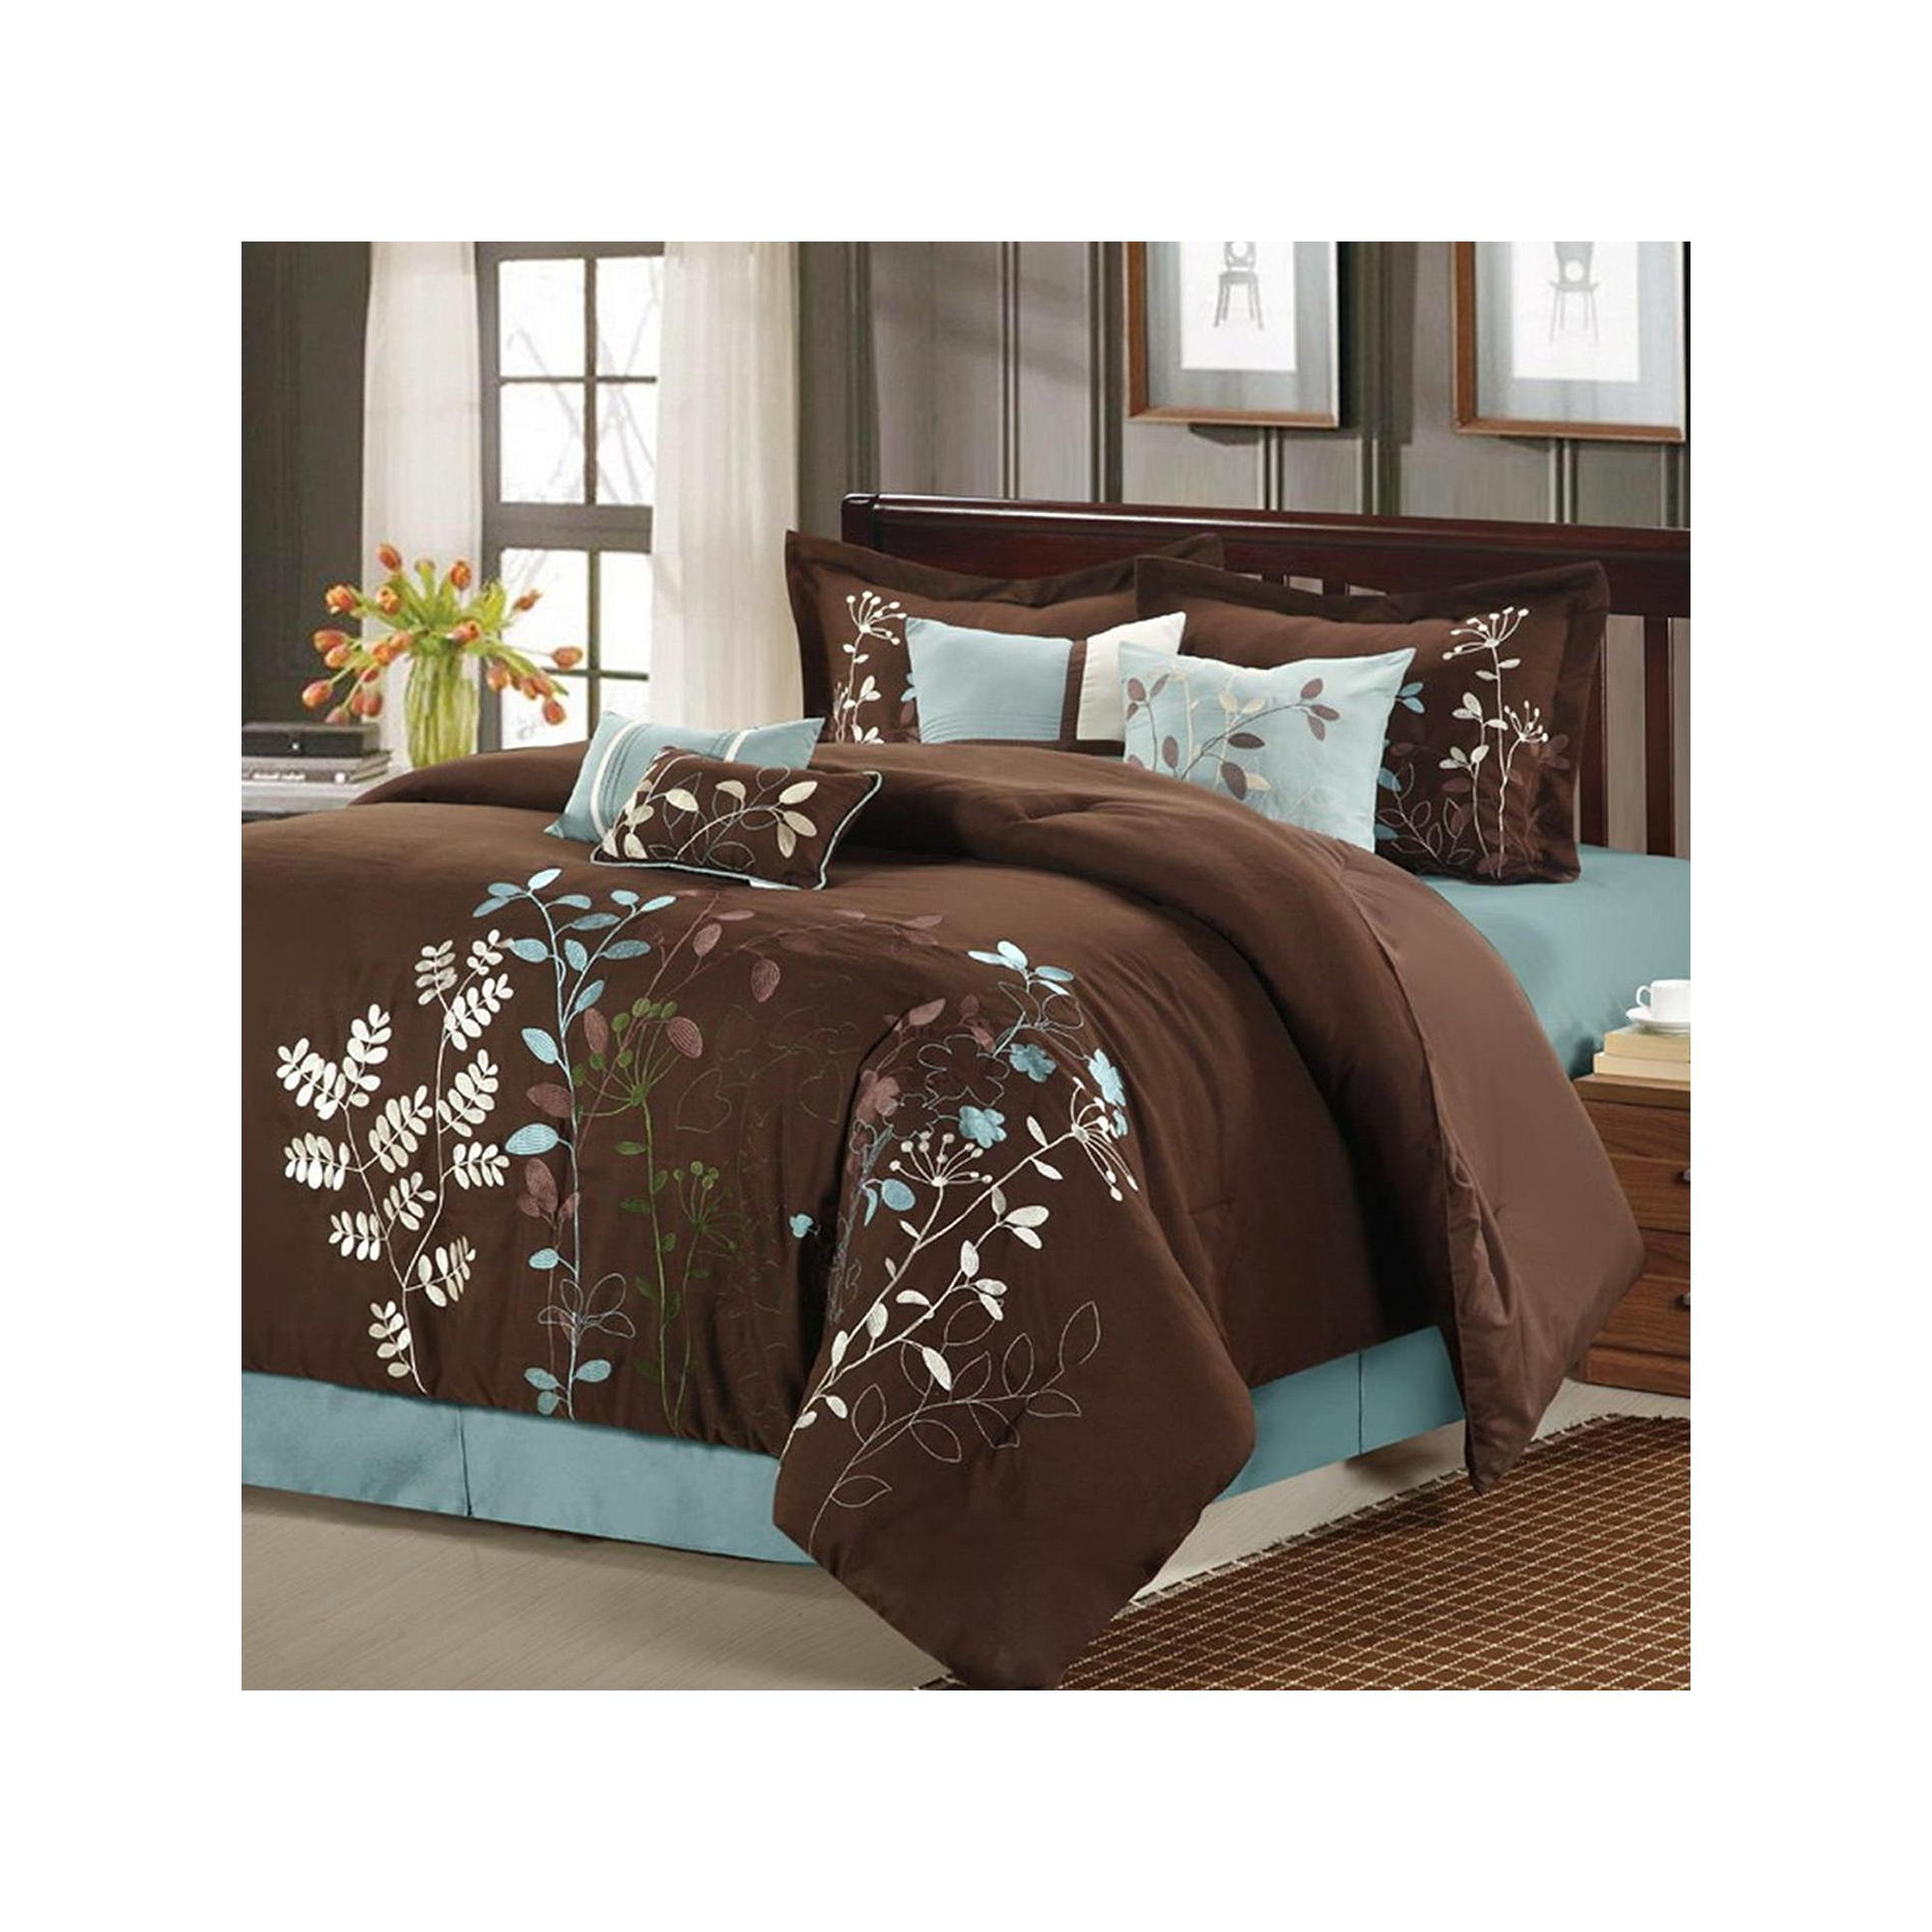 8pc Brown and White Bliss Floral Luxury Bed in a Bag Comforter Set /& Pillows